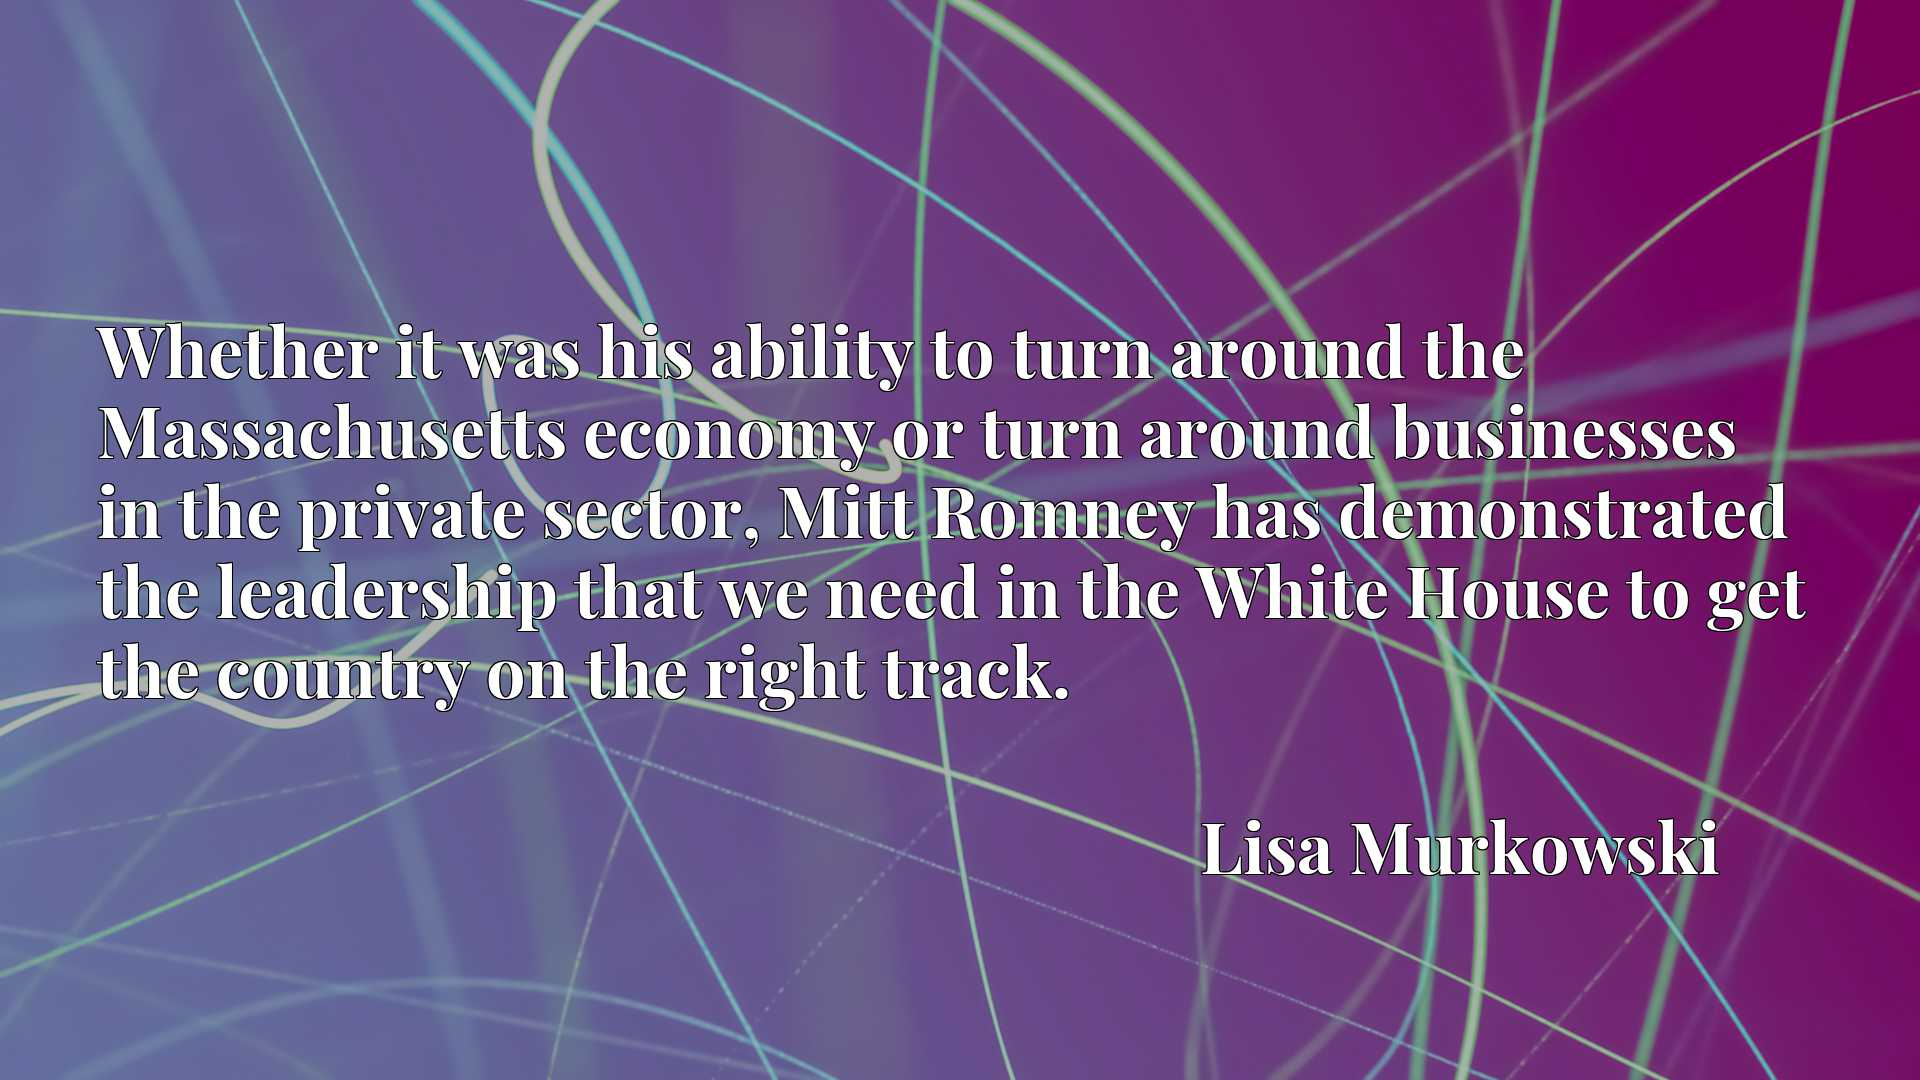 Whether it was his ability to turn around the Massachusetts economy or turn around businesses in the private sector, Mitt Romney has demonstrated the leadership that we need in the White House to get the country on the right track.